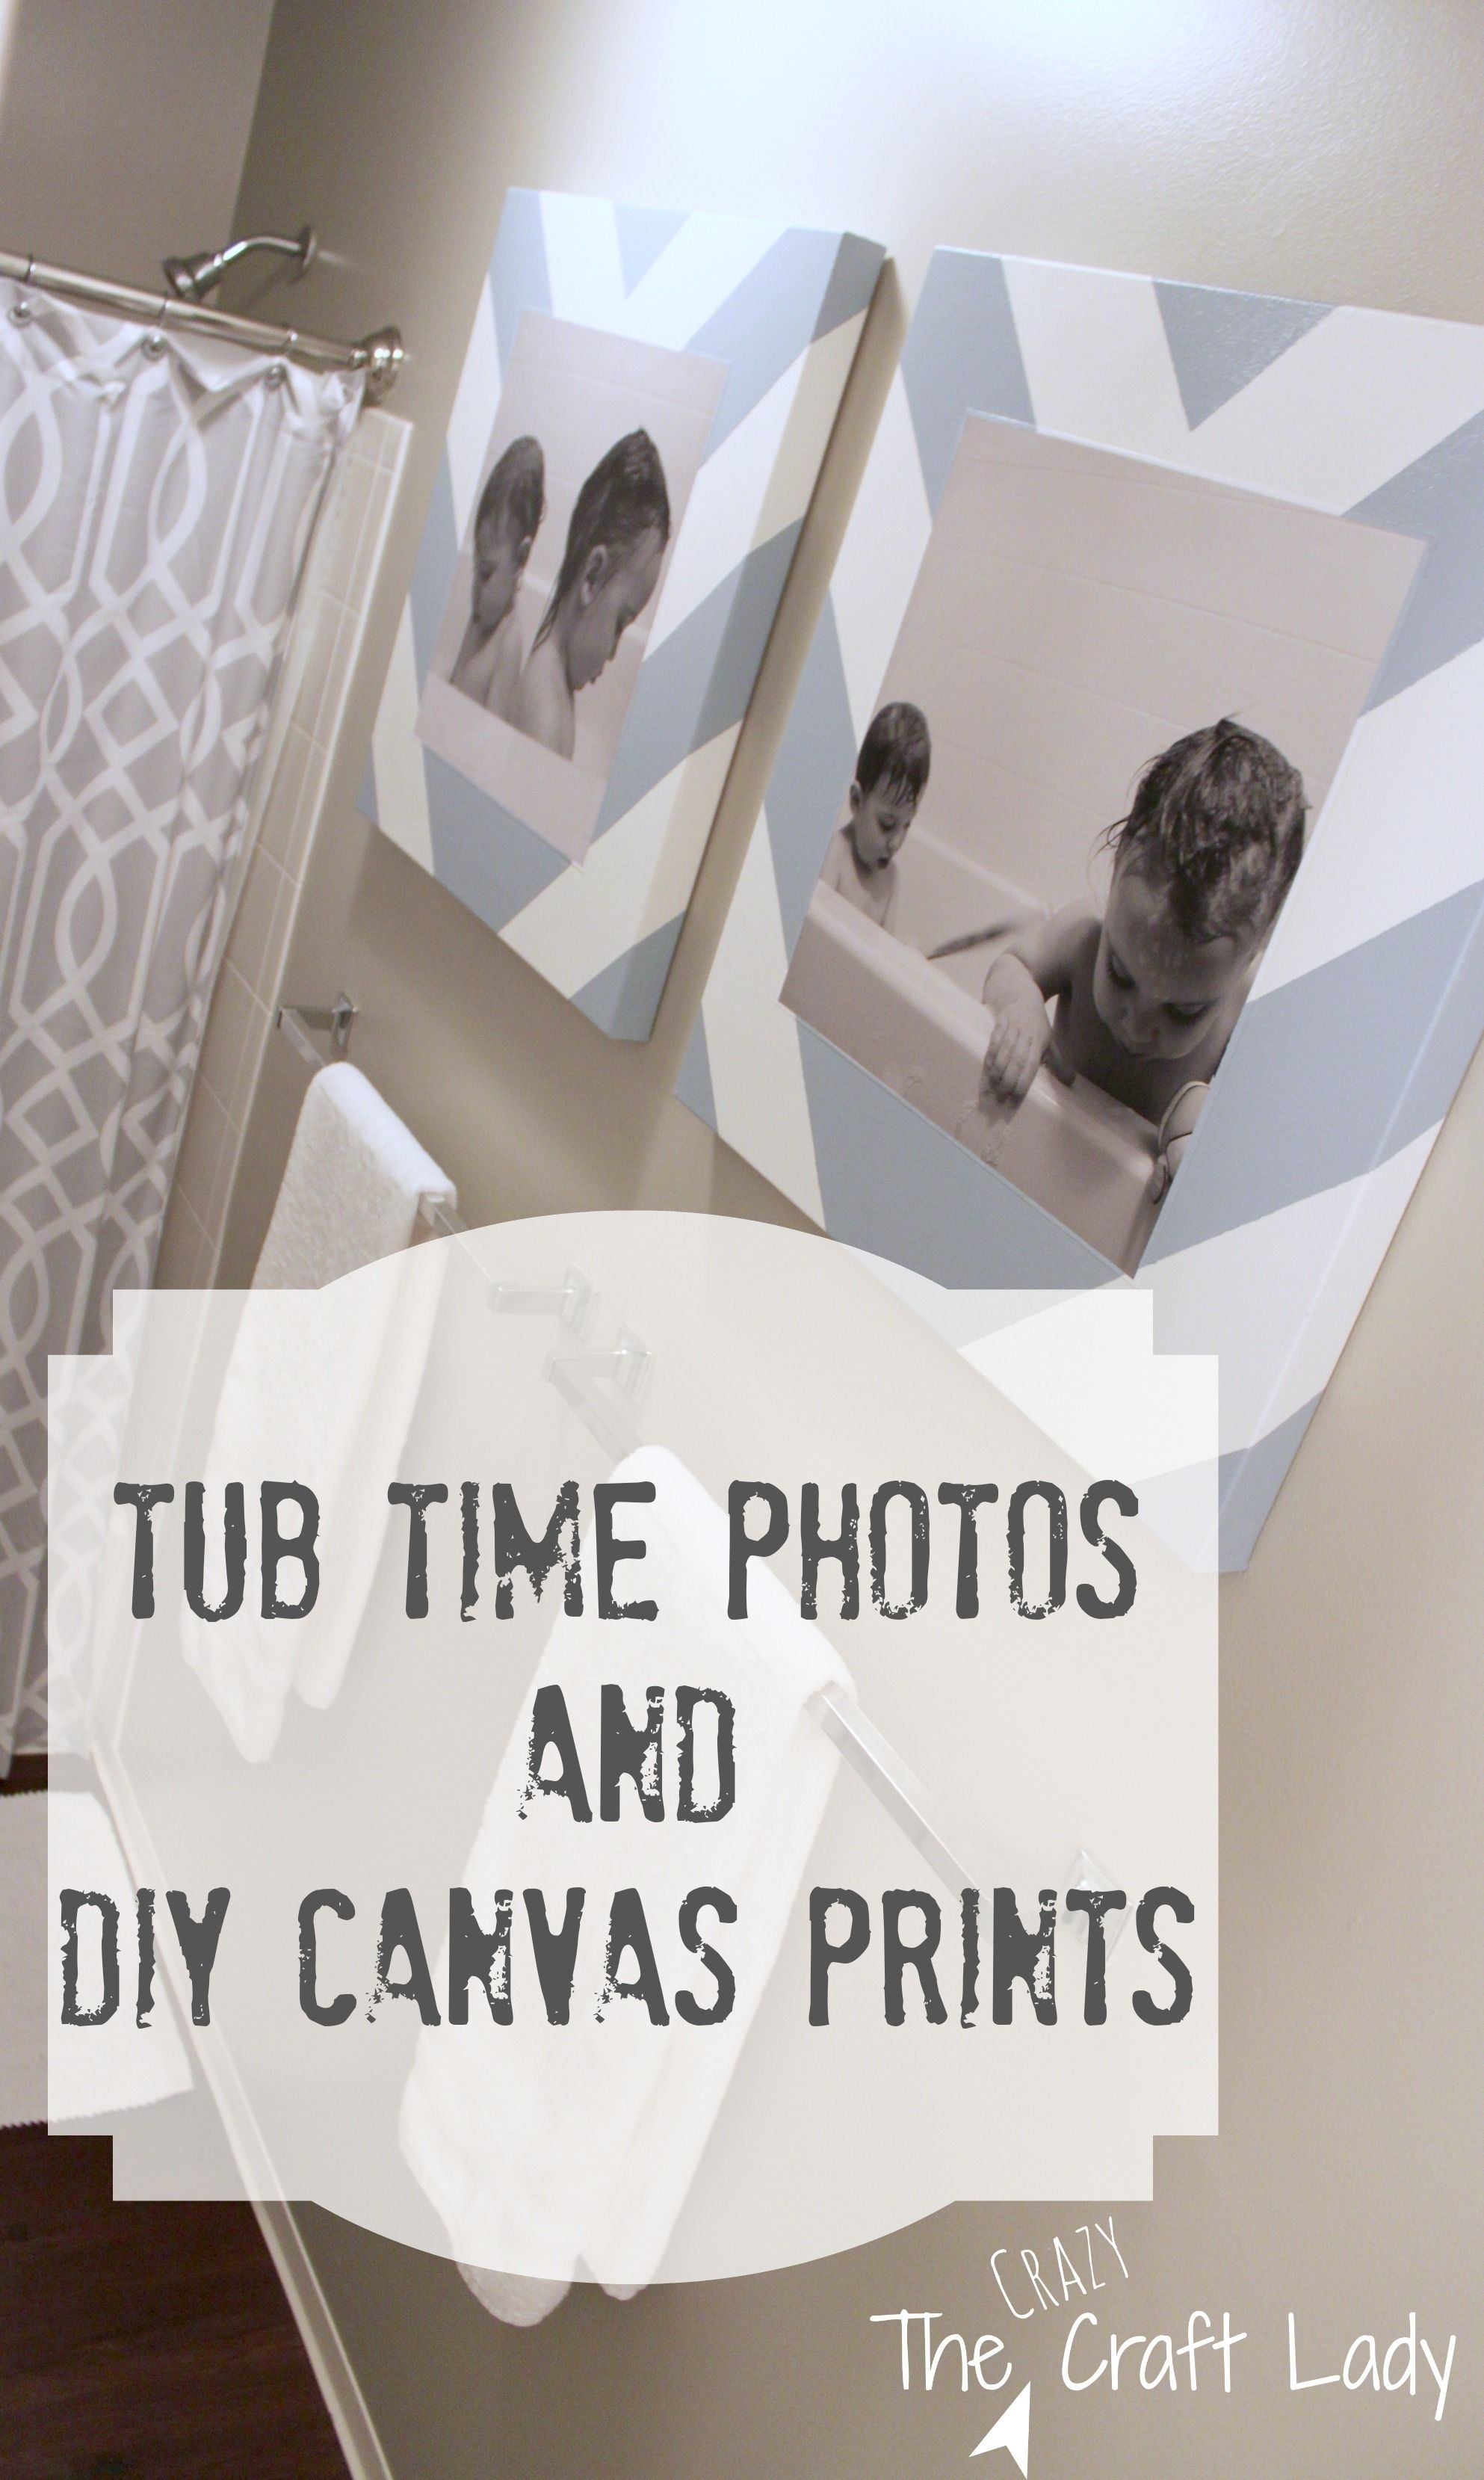 Bath Time Photos And Diy Canvas Prints | Diy Canvas, Time Photo And Bath throughout Bathroom Canvas Wall Art (Image 3 of 20)